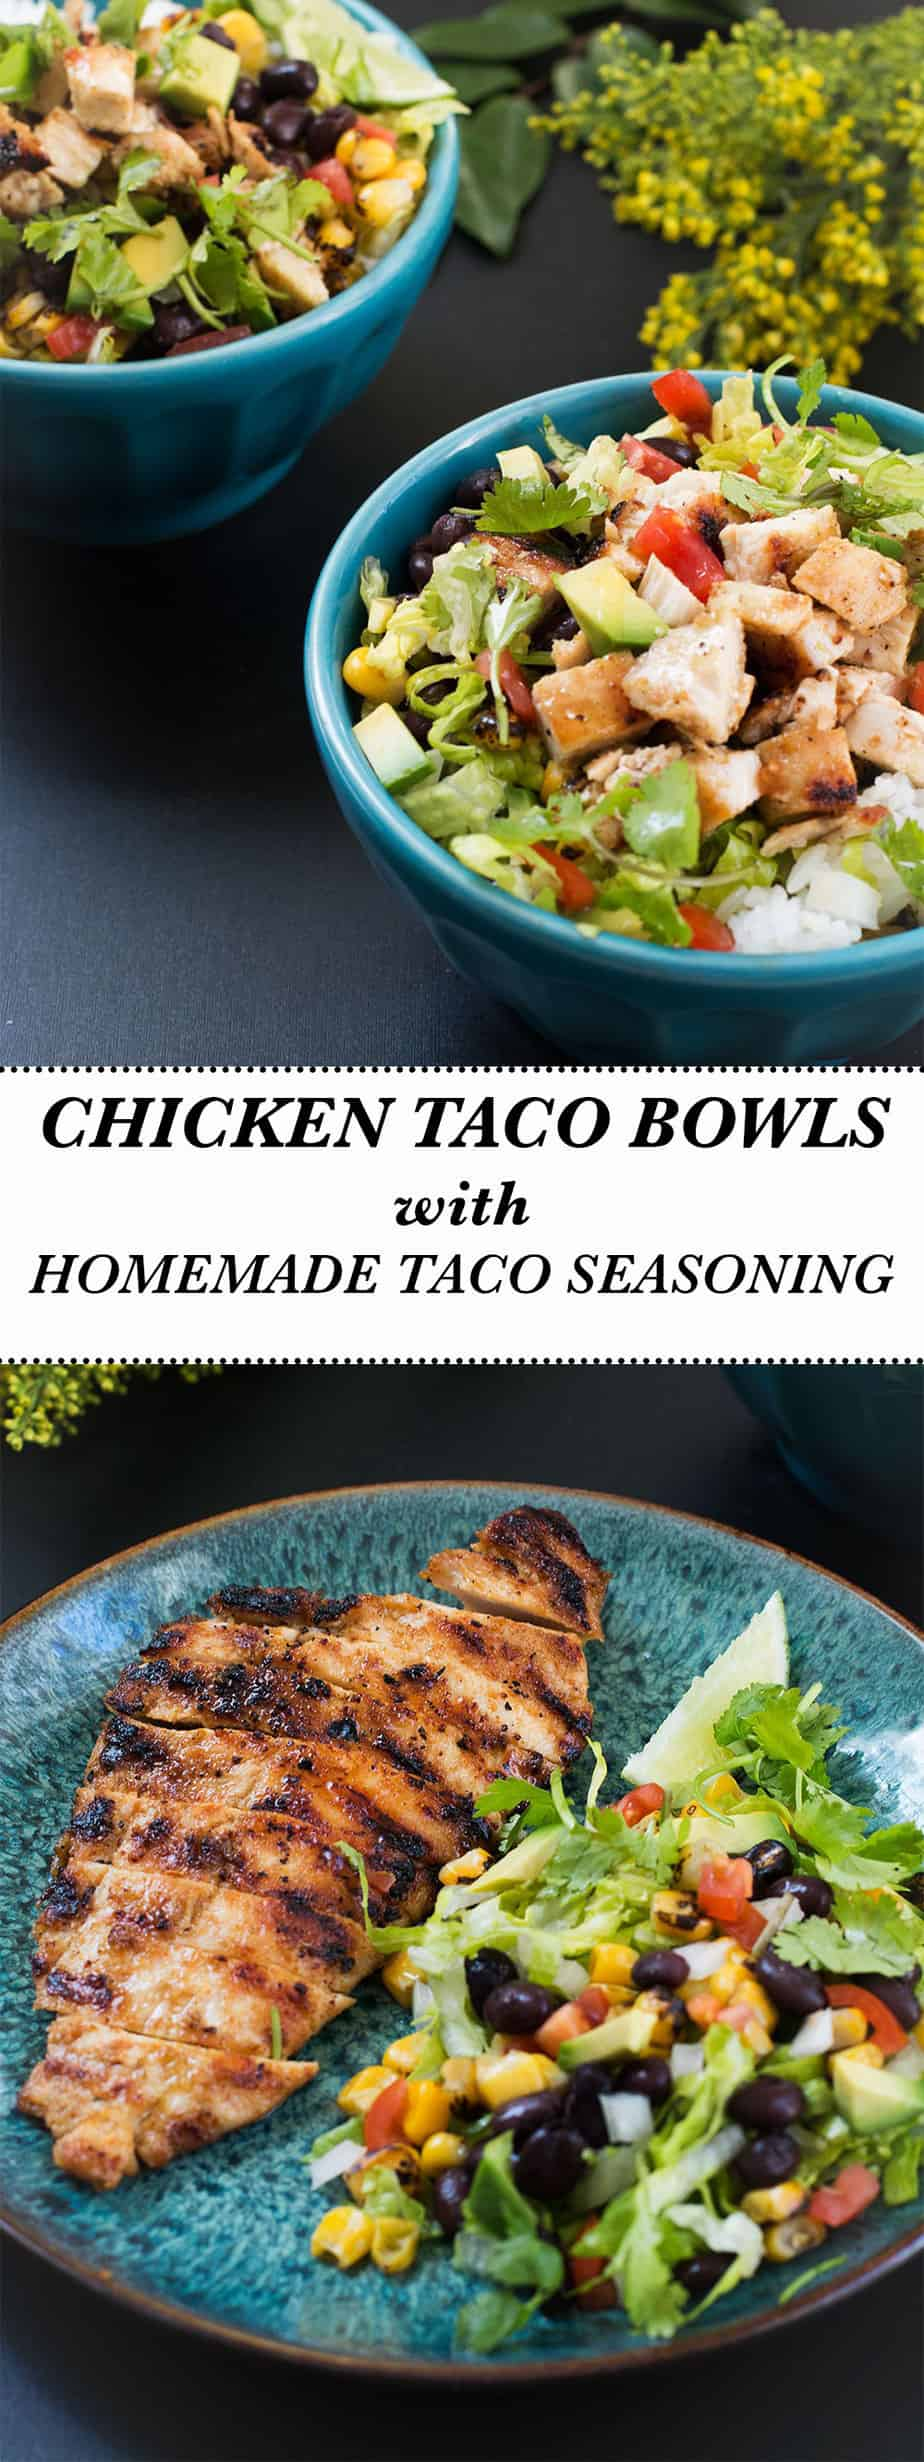 chicken-taco-bowls-homemade-taco-seasoning